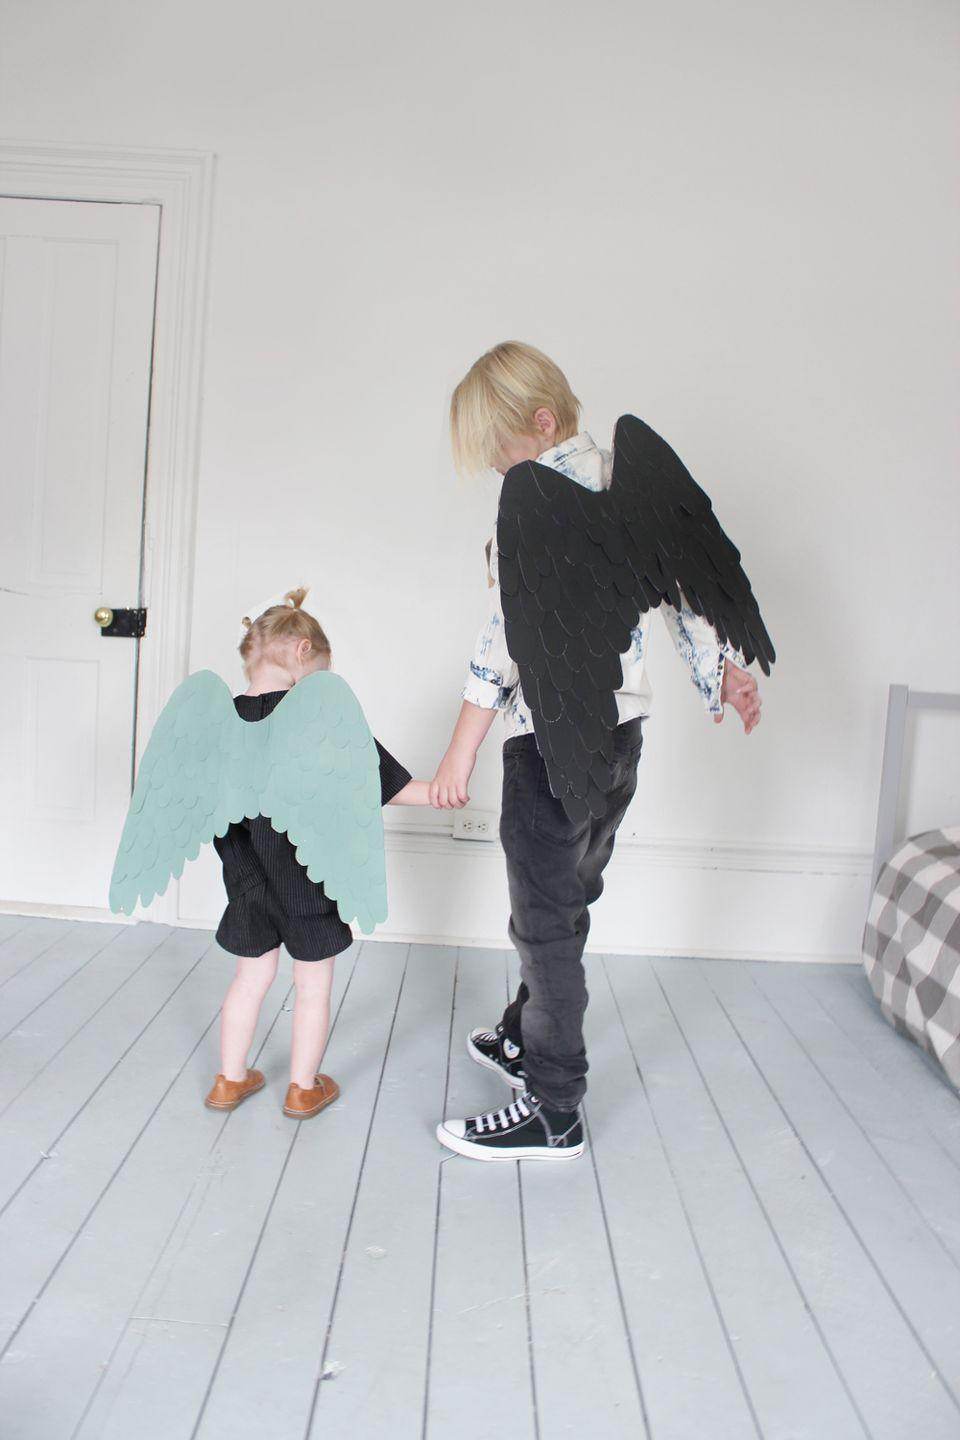 """<p>The most essential accessory for any angel costume is the wings — but that doesn't mean you need to go out and buy a pair. Instead, try this simple tutorial that uses cardboard, paper stock, and hot glue for an easy DIY option. </p><p><em><a href=""""http://mermagblog.com/cardboard-paper-wings-a-back-to-school-dinner/"""" rel=""""nofollow noopener"""" target=""""_blank"""" data-ylk=""""slk:Get the tutorial at Mer Mag Blog »"""" class=""""link rapid-noclick-resp"""">Get the tutorial at Mer Mag Blog »</a></em><strong><br></strong></p><p><strong><strong>RELATED: </strong></strong><a href=""""https://www.goodhousekeeping.com/holidays/halloween-ideas/g1709/homemade-halloween-costumes/"""" rel=""""nofollow noopener"""" target=""""_blank"""" data-ylk=""""slk:56 Easy Homemade Halloween Costumes for Kids and Adults"""" class=""""link rapid-noclick-resp"""">56 Easy Homemade Halloween Costumes for Kids and Adults</a> </p>"""